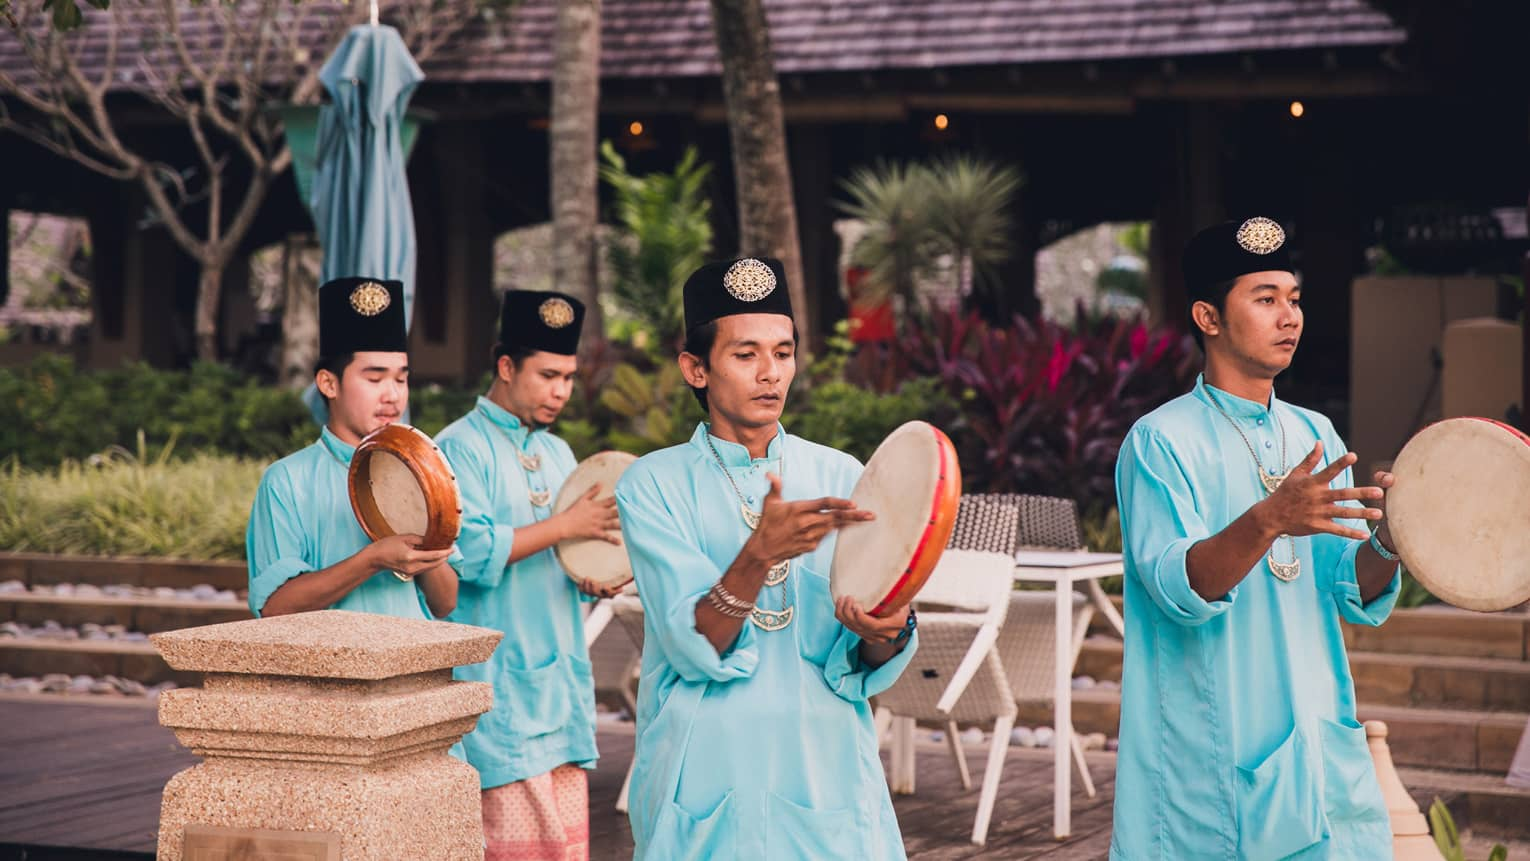 Group of men walk with Kompangs traditional hand drums